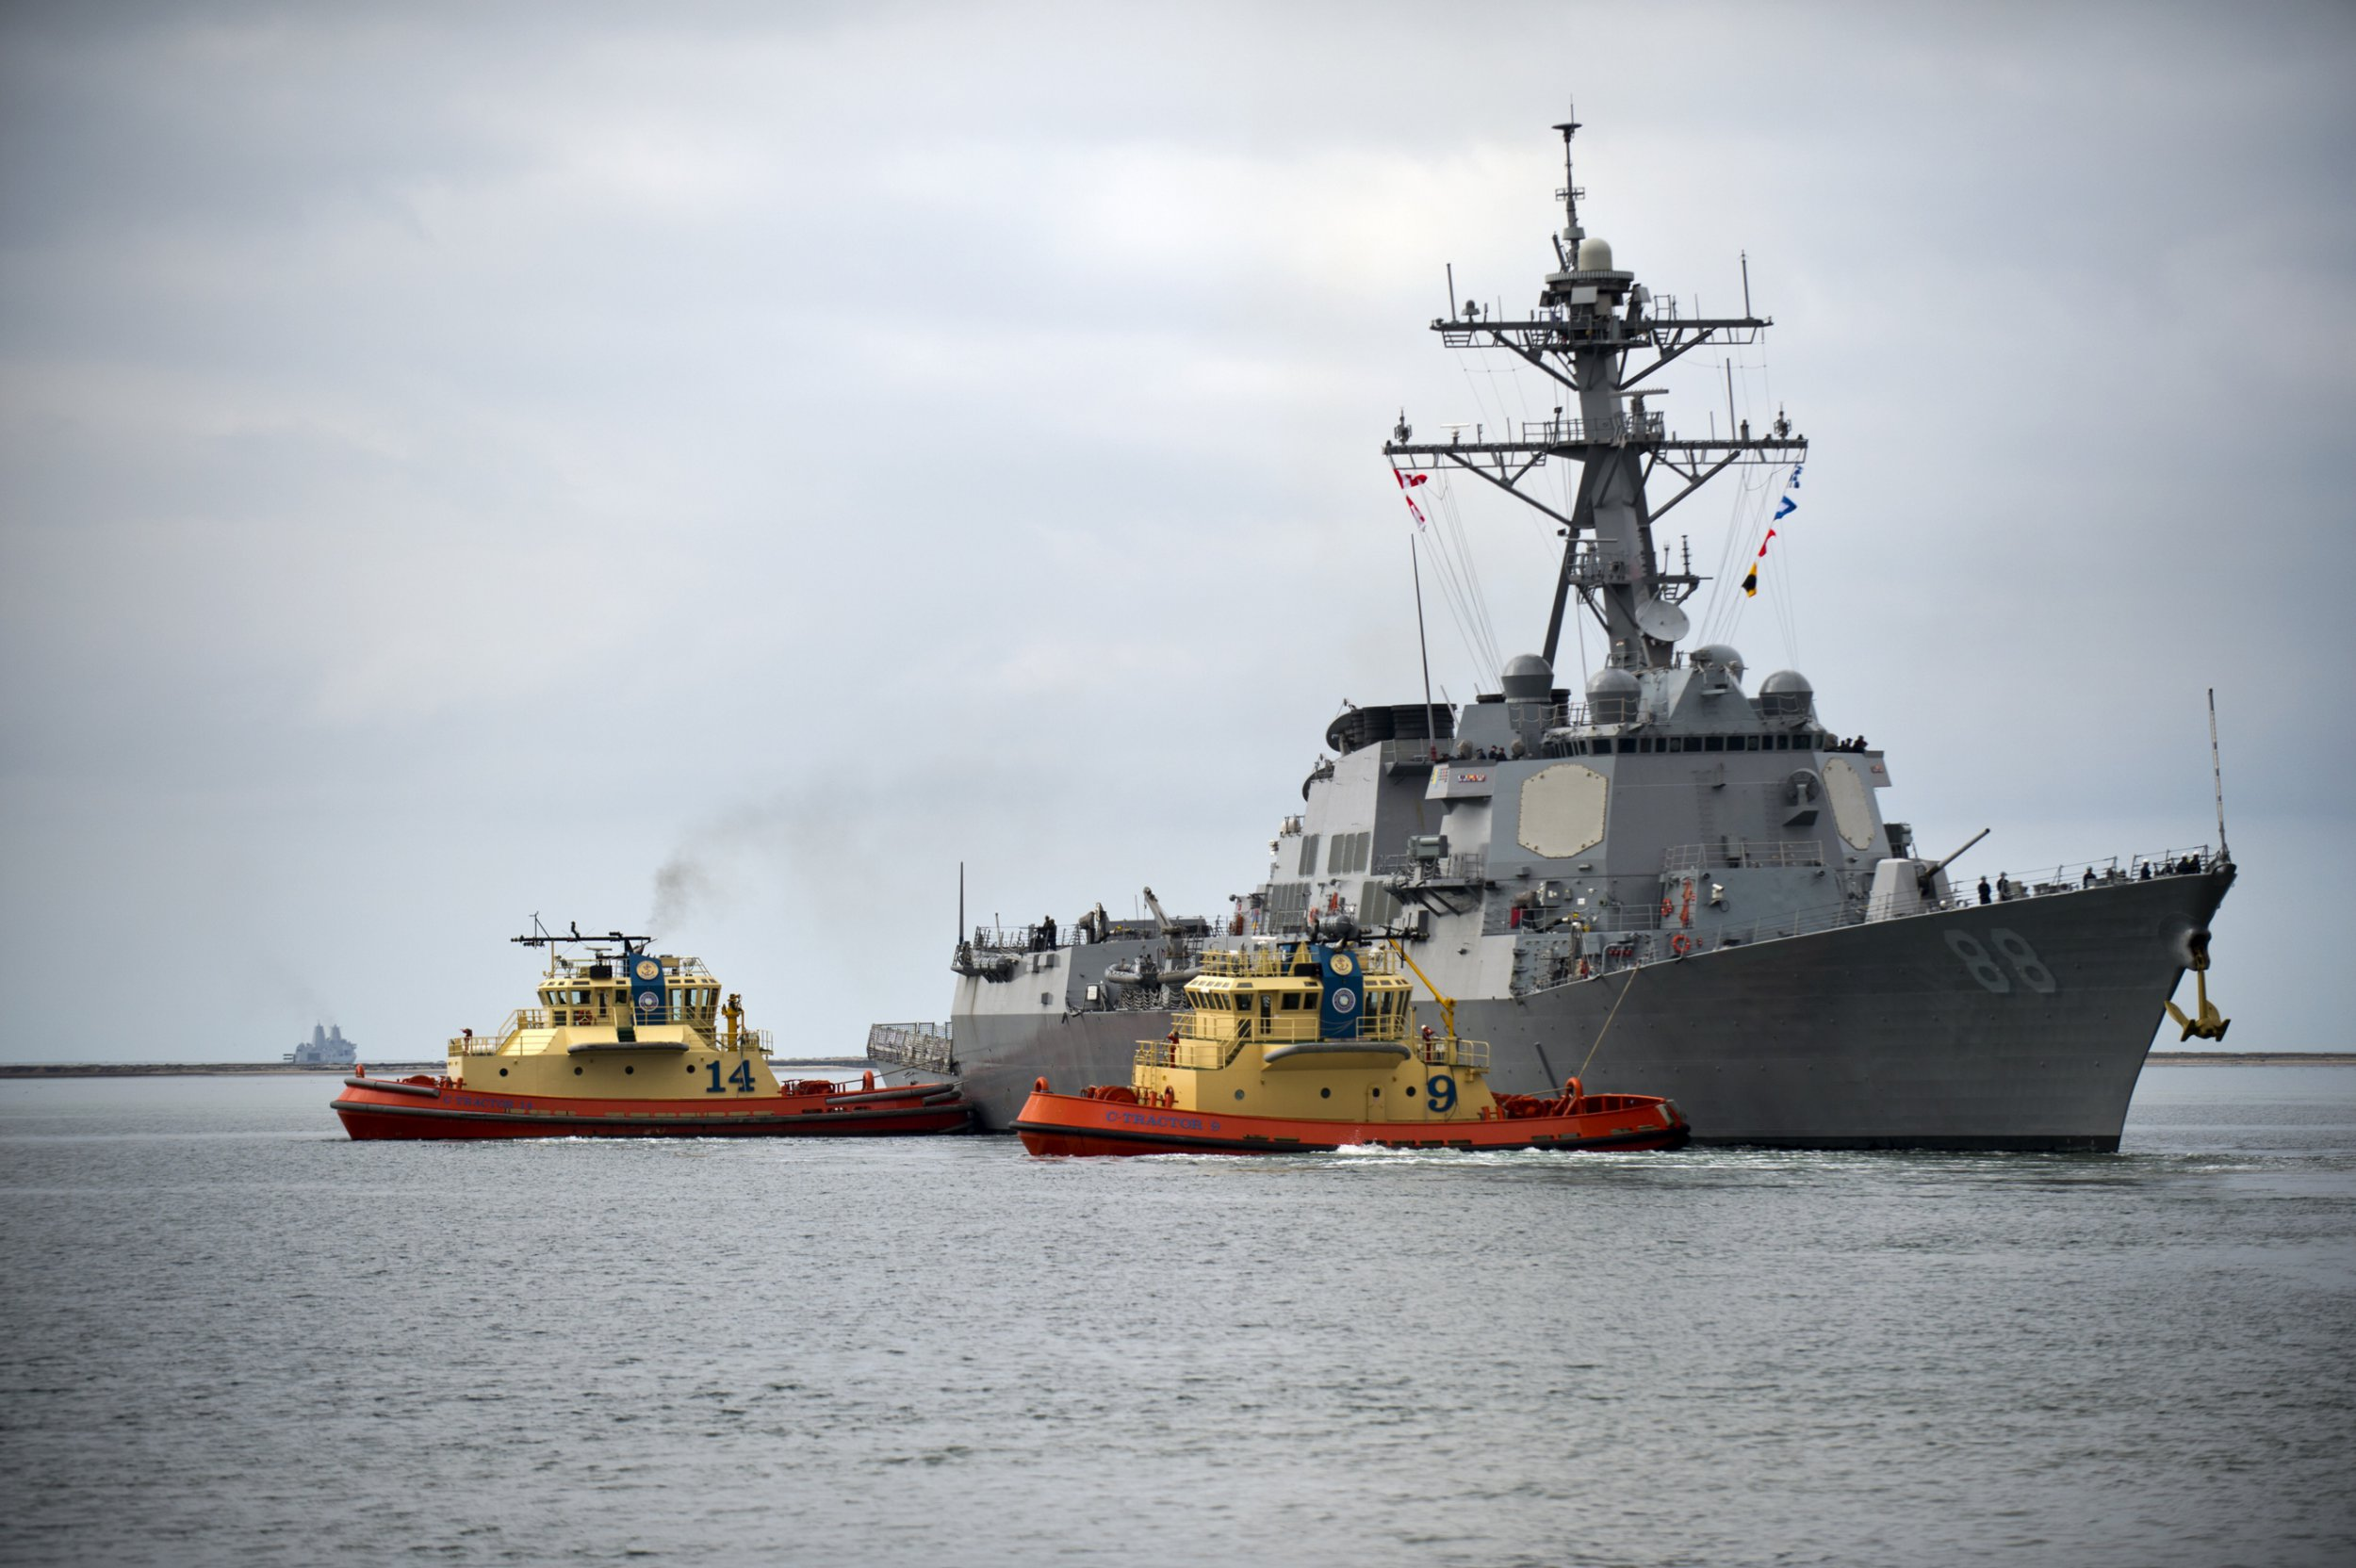 The Arleigh Burke-class guided-missile destroyer USS Preble departs Naval Base San Diego for a scheduled underway, San Diego, California, February 6, 2013. (Photo via Smith Collection/Gado/Getty Images).